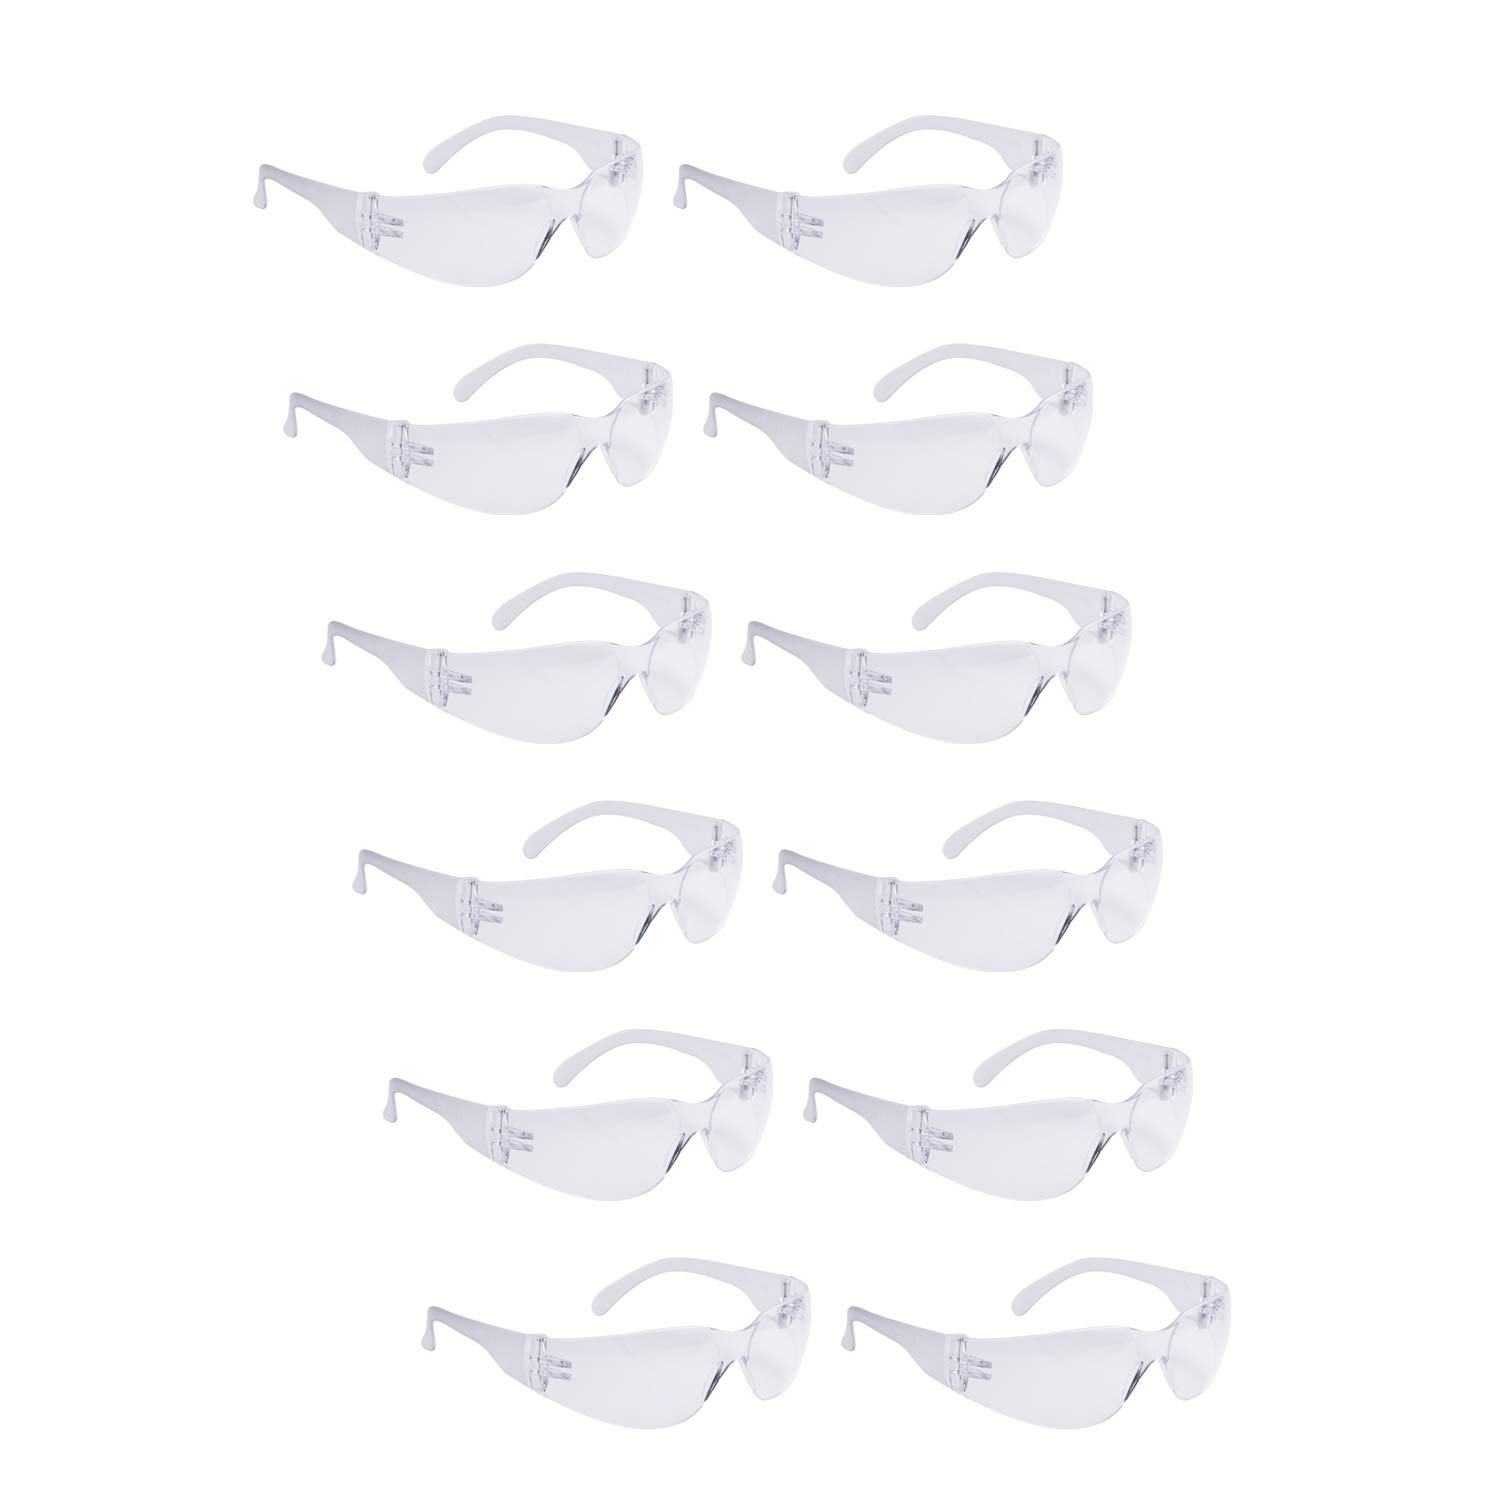 ROAR Clear Safety Glasses 12 pairs per box Eyewear Protective Glasses Safety Goggle Airsoft Goggle, Strong Impact Resistant Lens for Laboratory, Construction, Industrial Safety, Craft